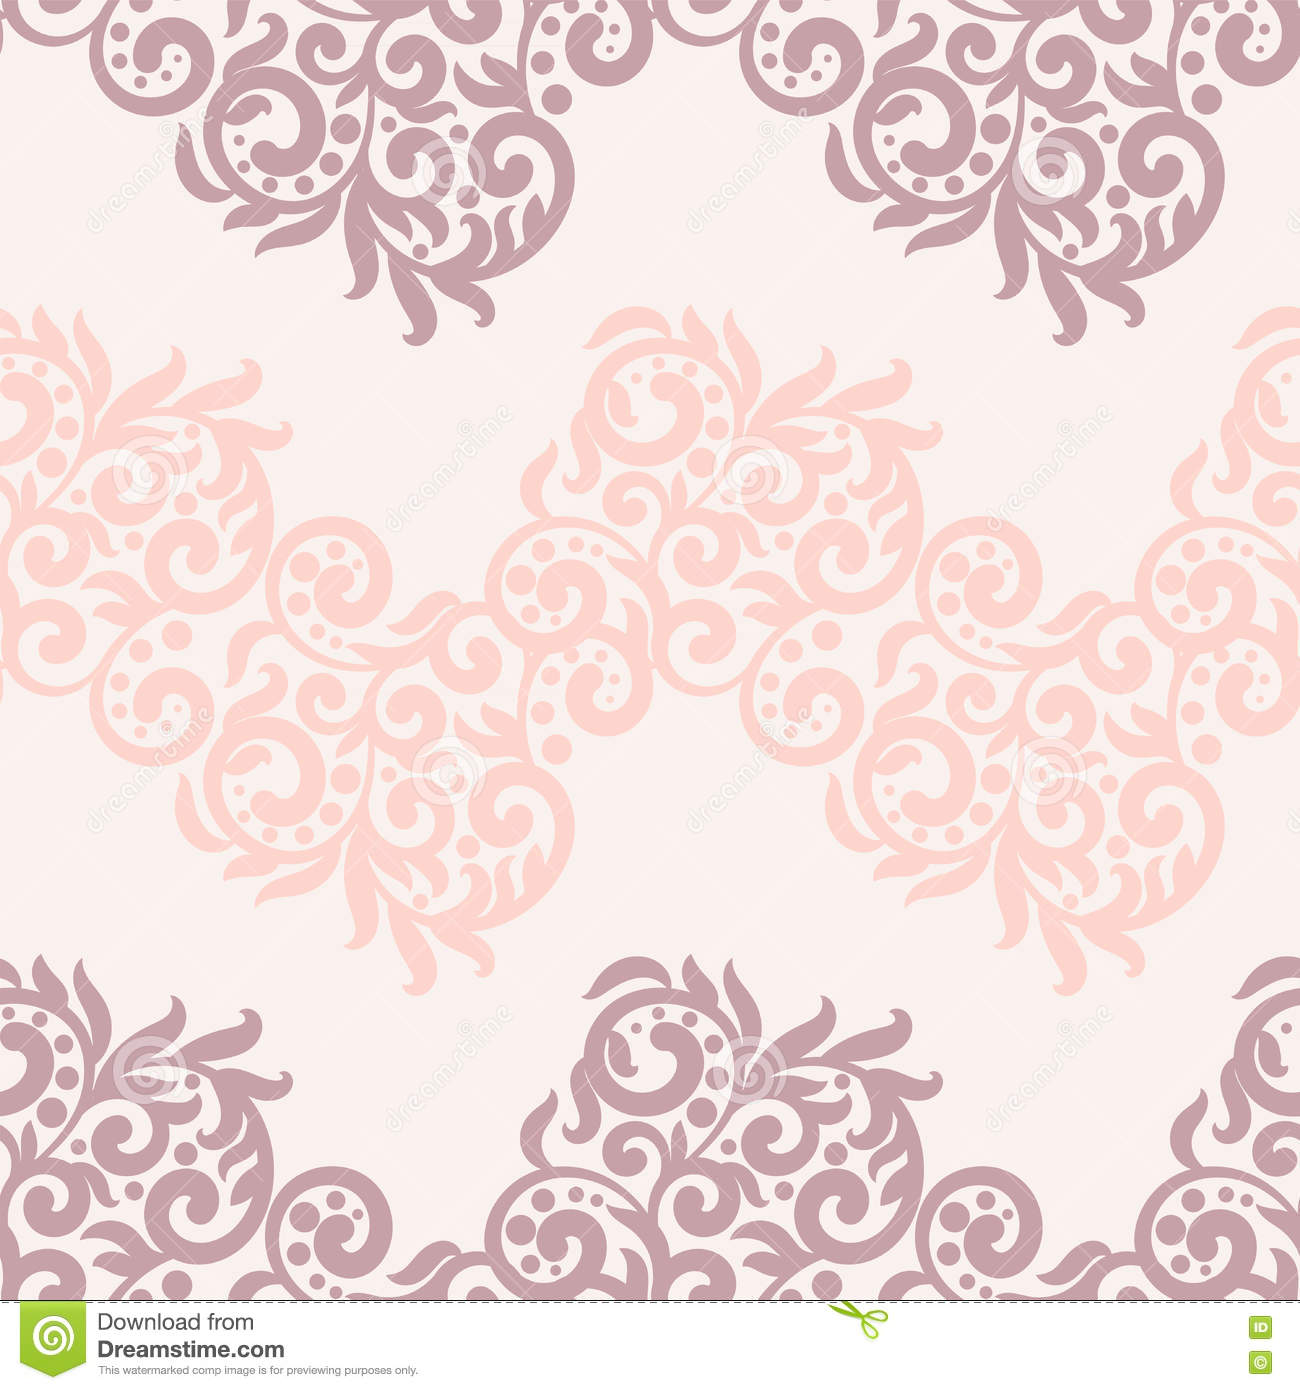 Filigree lace tracery in pastel colors for wedding cards invitation or scrapbook design soft - Pastel lace wallpaper ...